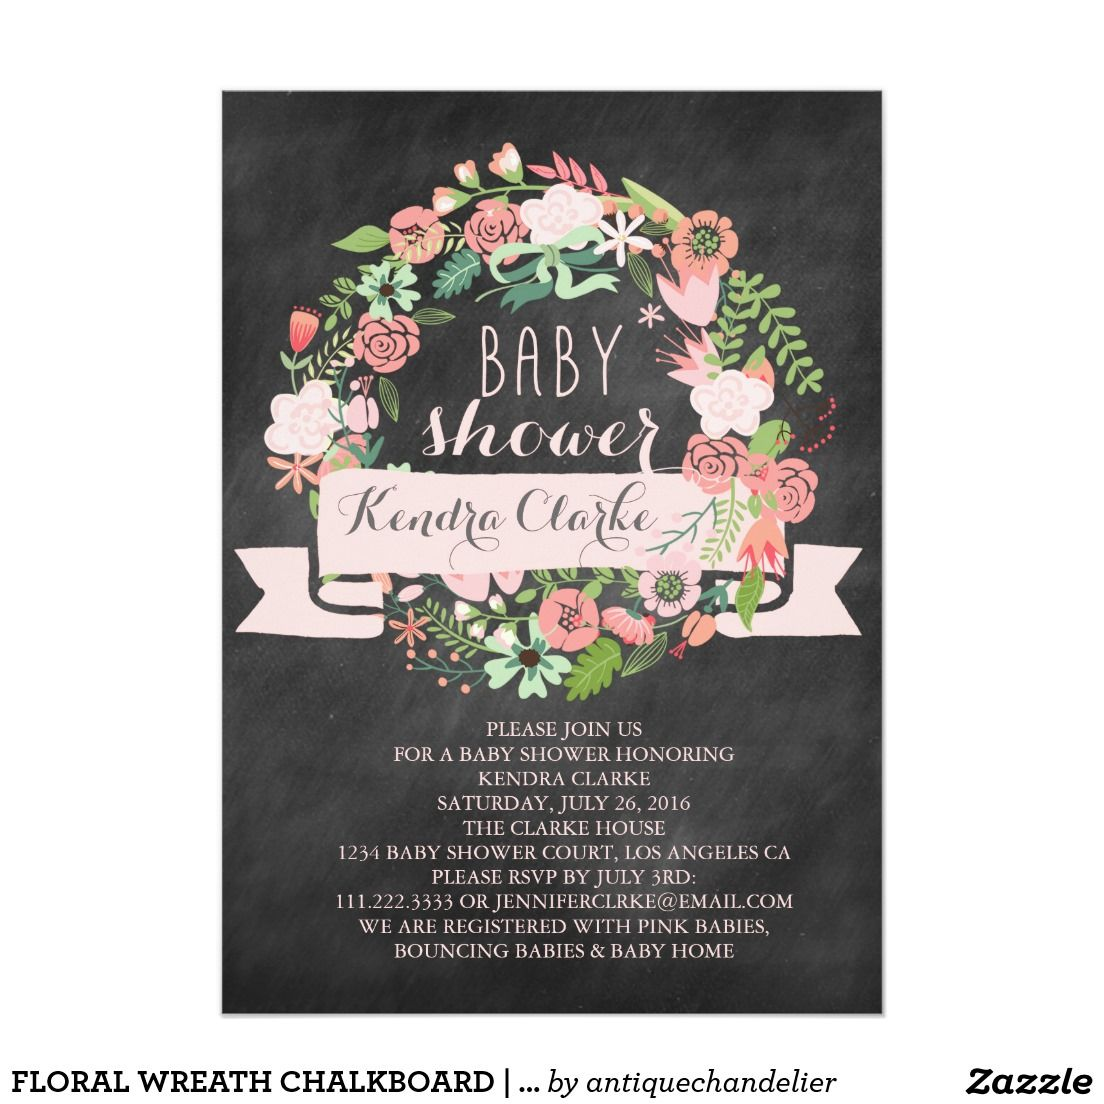 FLORAL WREATH CHALKBOARD | BABY SHOWER INVITATION | Cute Girly Girl ...